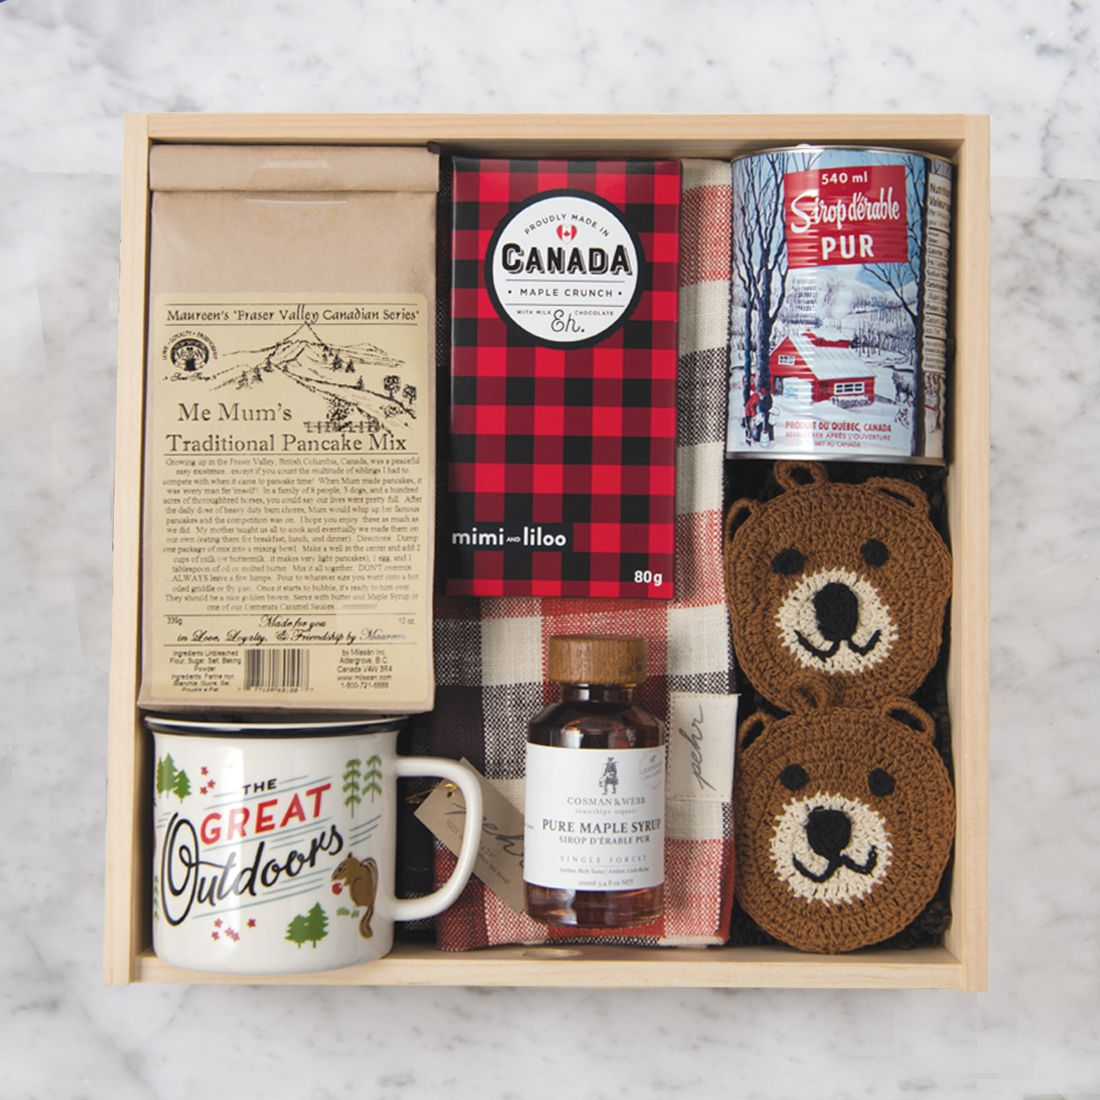 Canadian Eh Gourmet Gift Basket Canadian Gifts Homemade Gift Baskets Gourmet Food Gift Basket